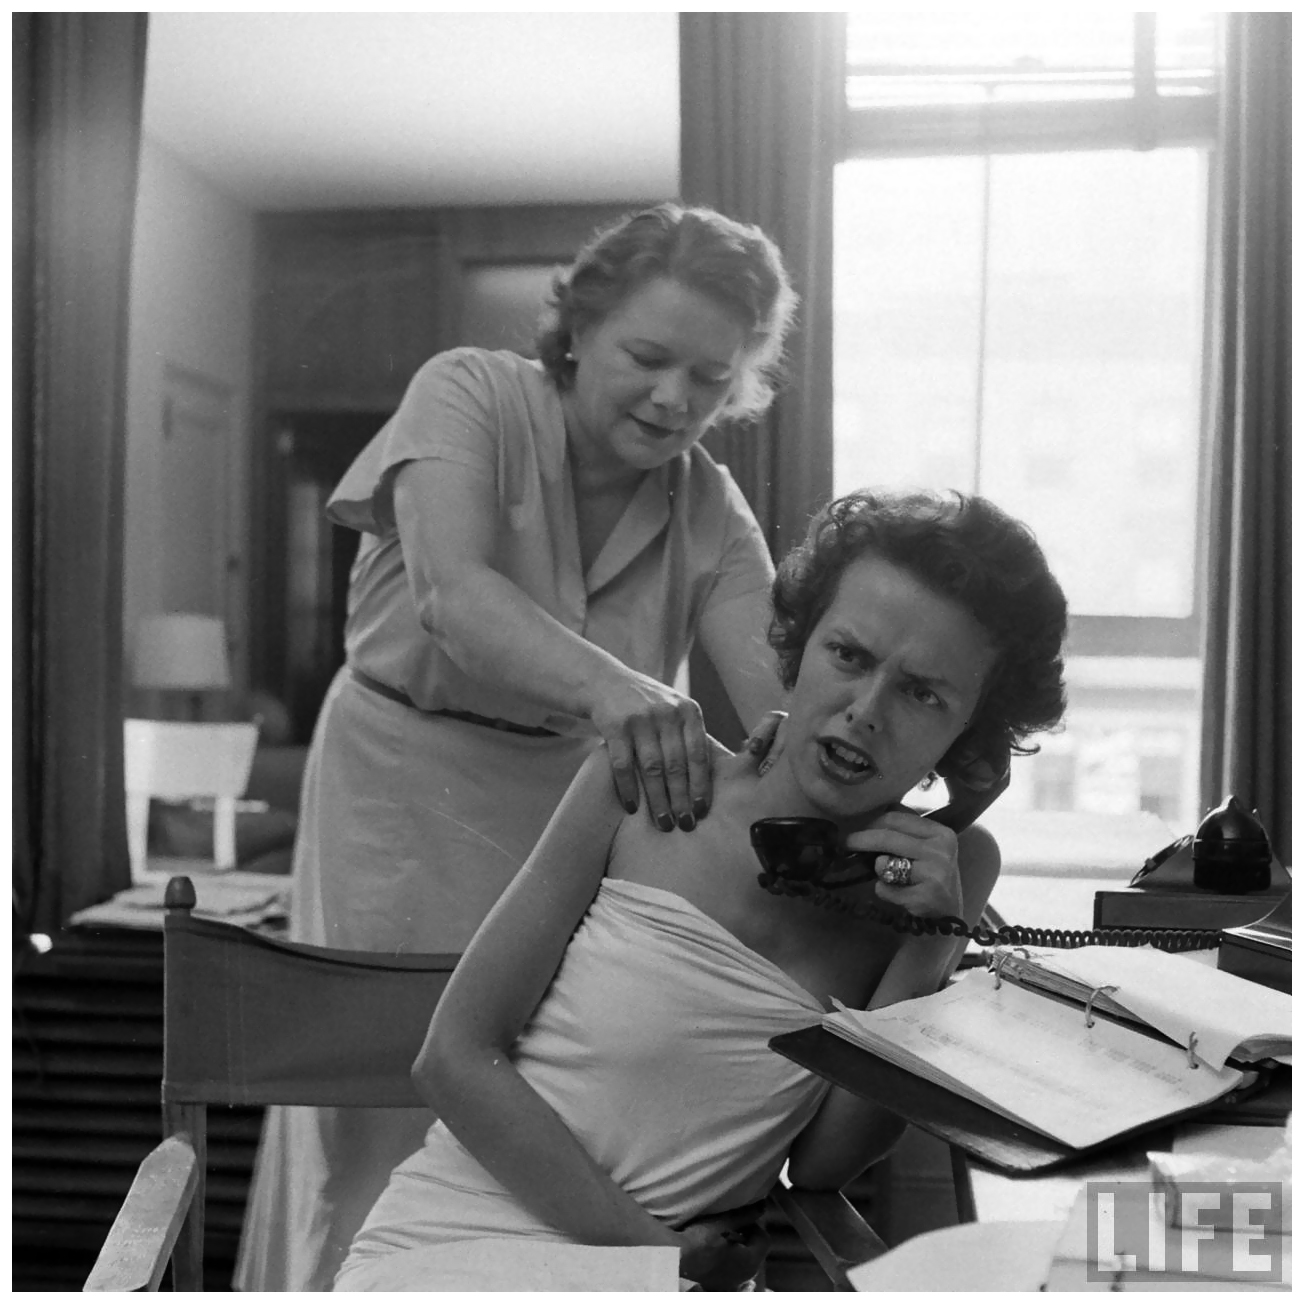 Eileen ford model agengy massage on telephone